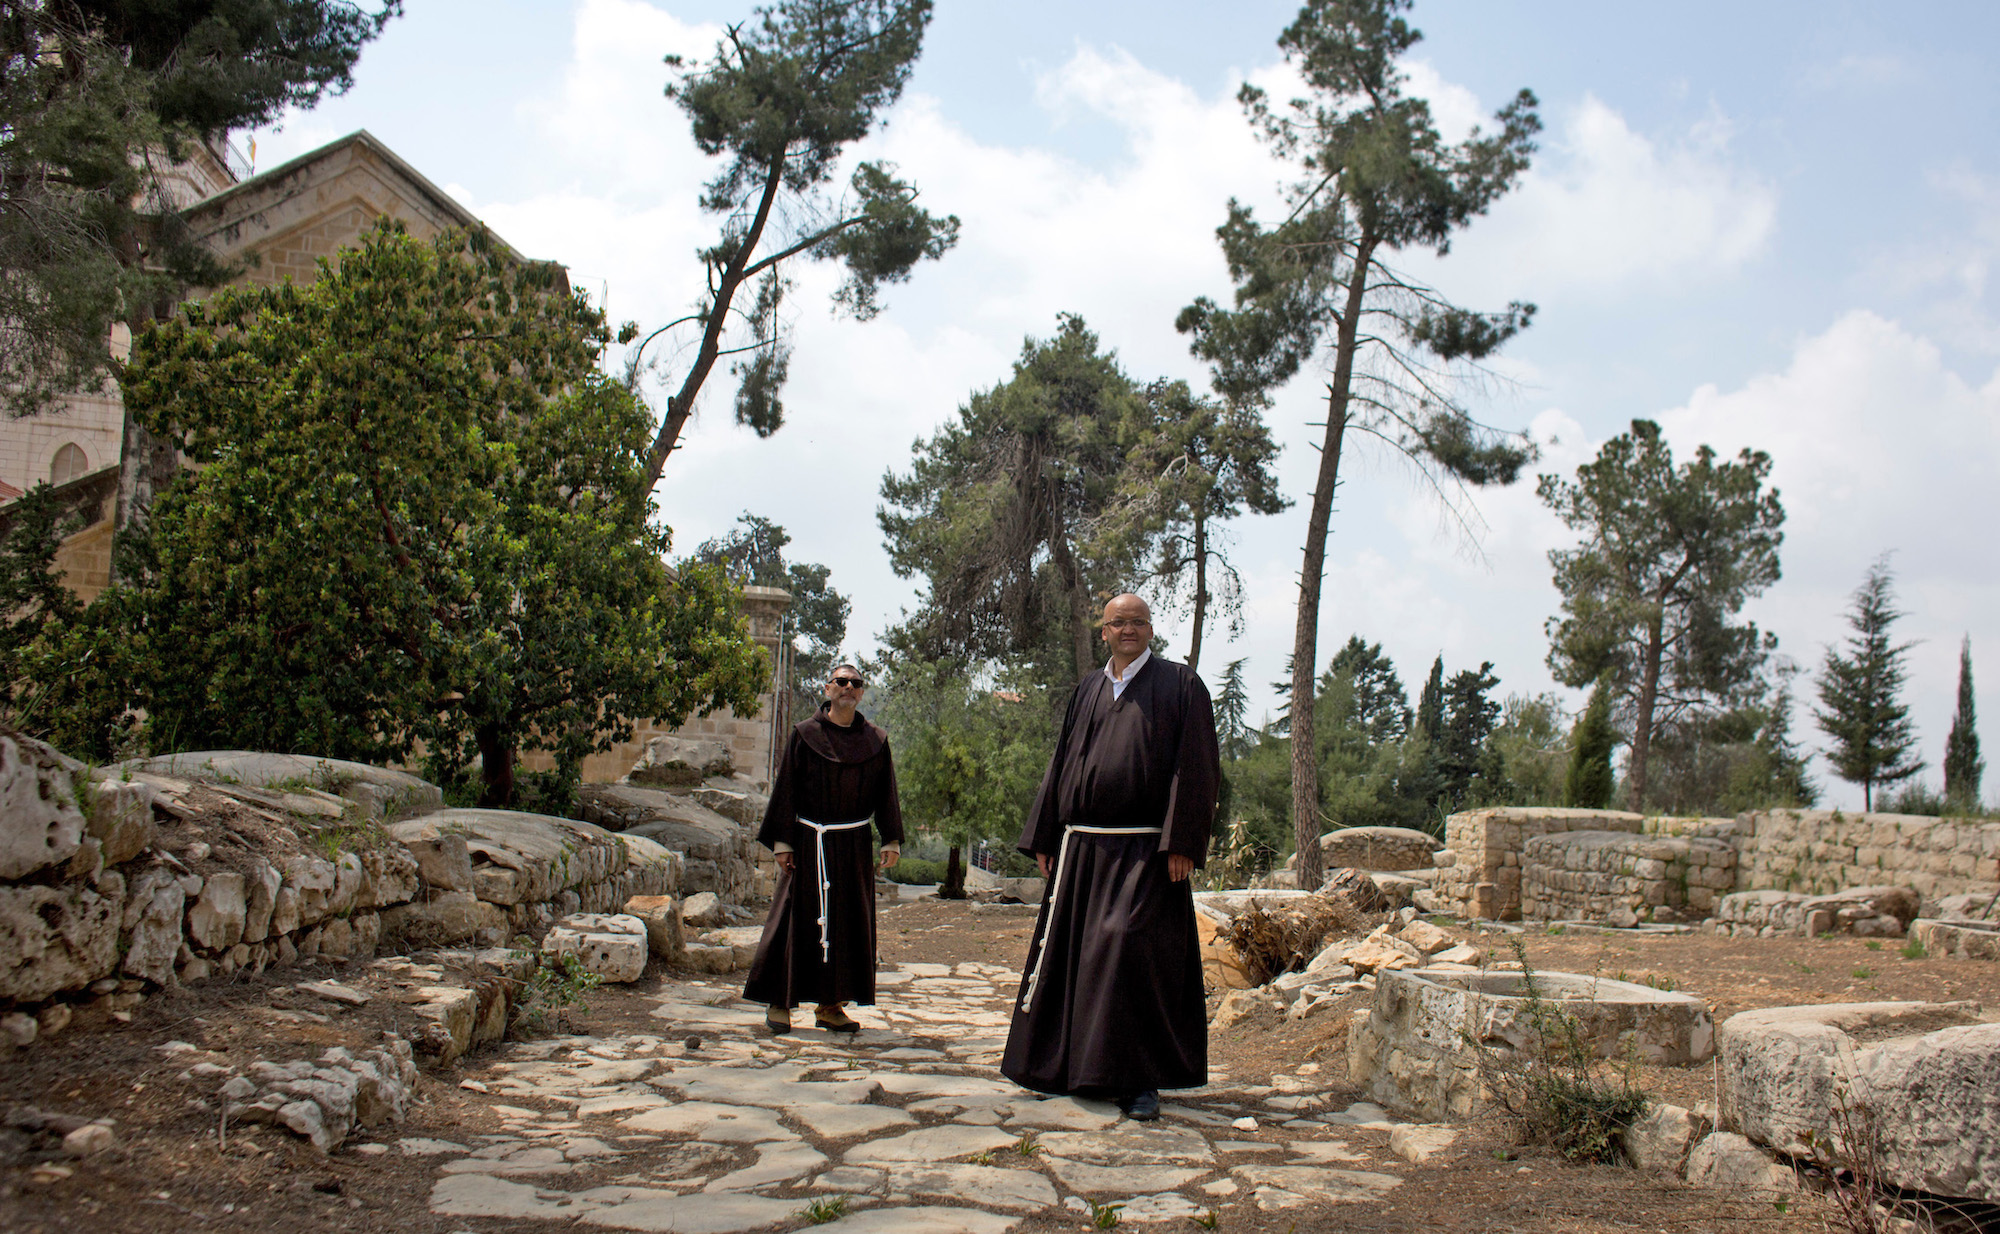 Father Salem Yunis, from Aleppo, Syria (R), and Father Oscar Rodriguez, from El Salvador (L), stand on the remnants of an ancient Roman road in Emmaus, which today lies in West Bank territory.